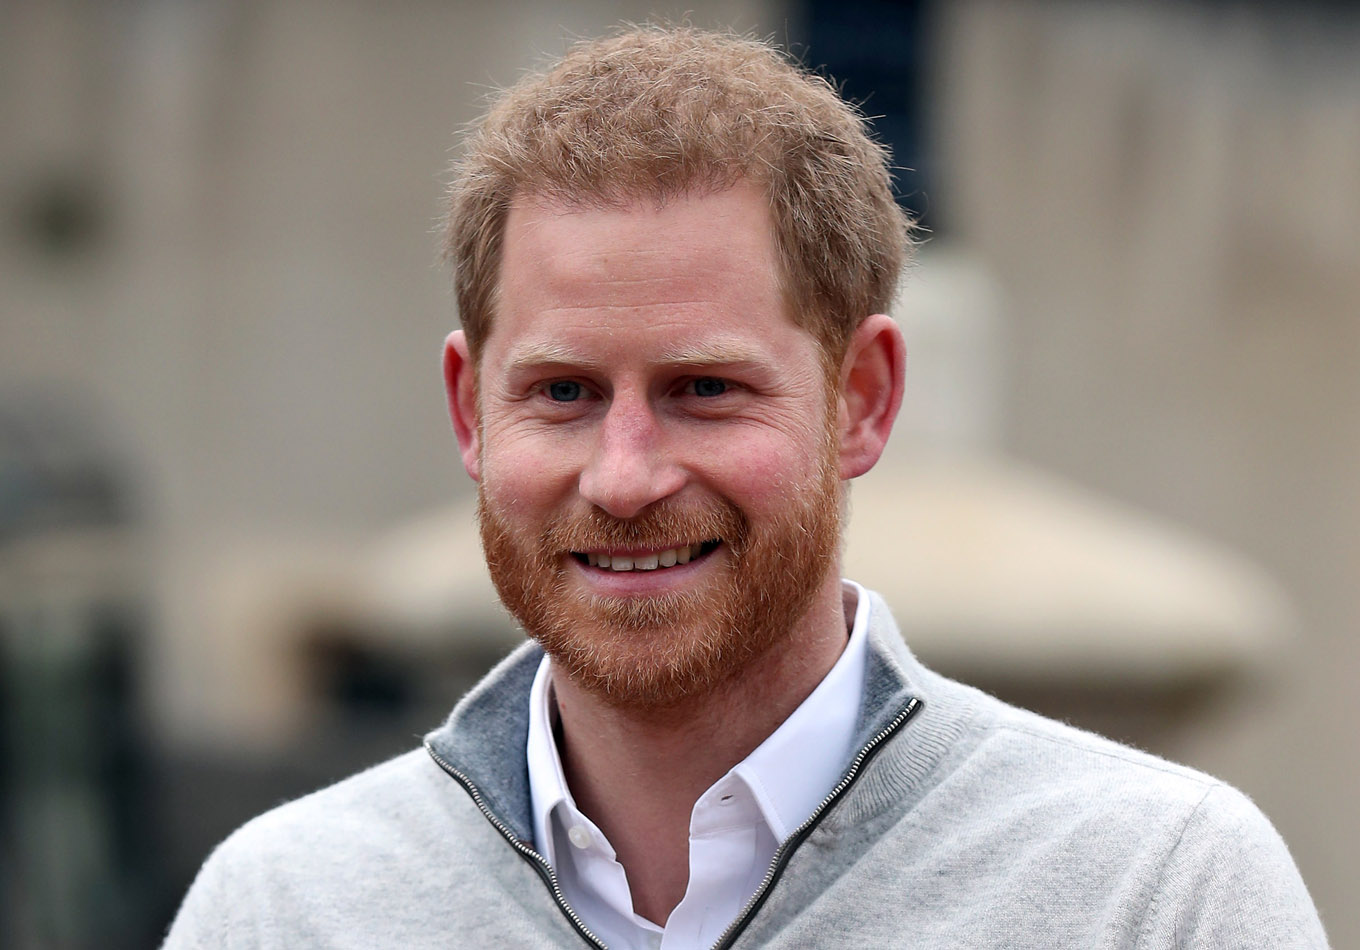 UK's Prince Harry to appear in public for first time since royal split